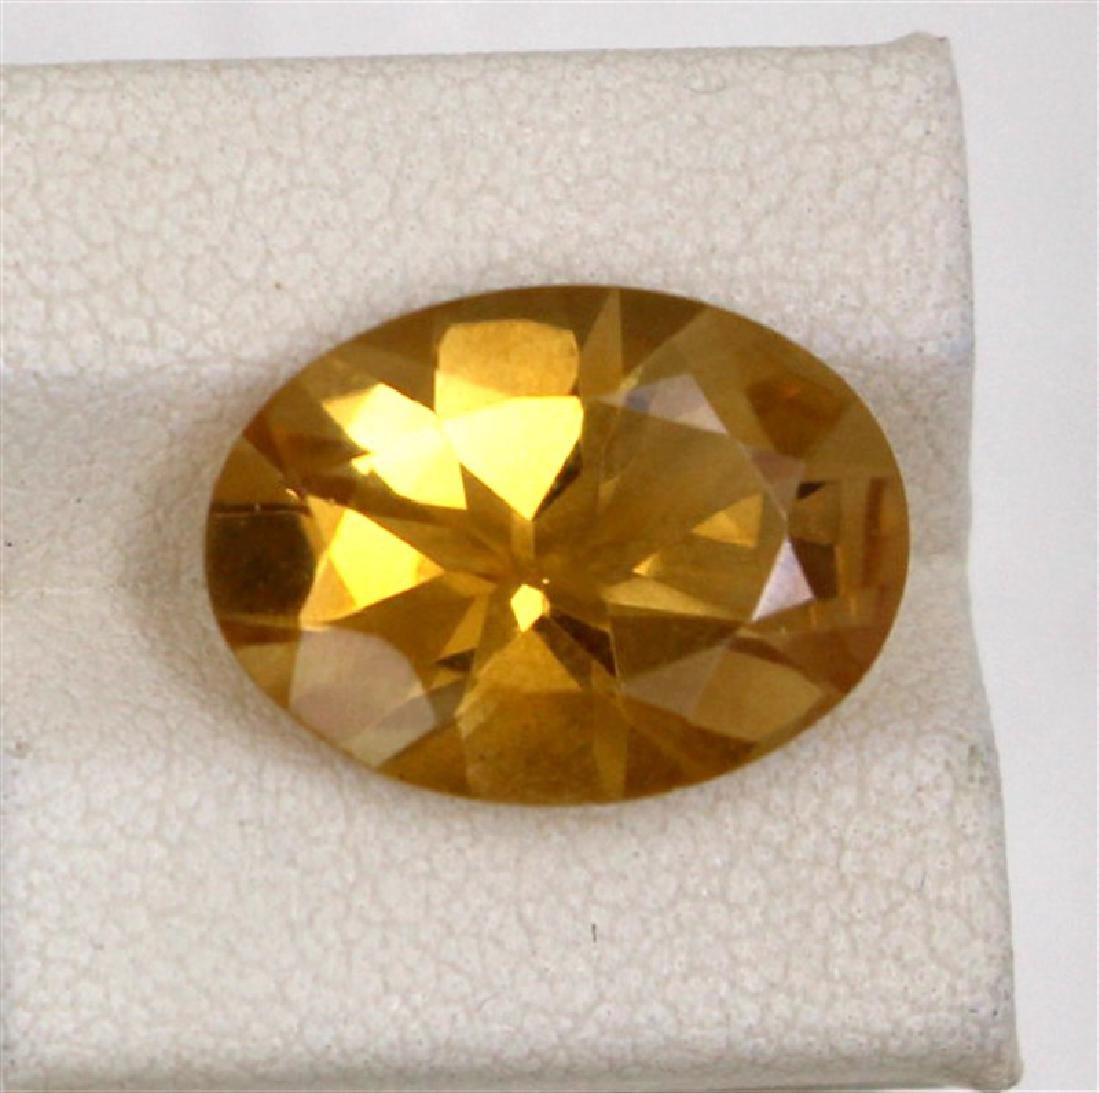 6.89ct Natural citrine oval cut